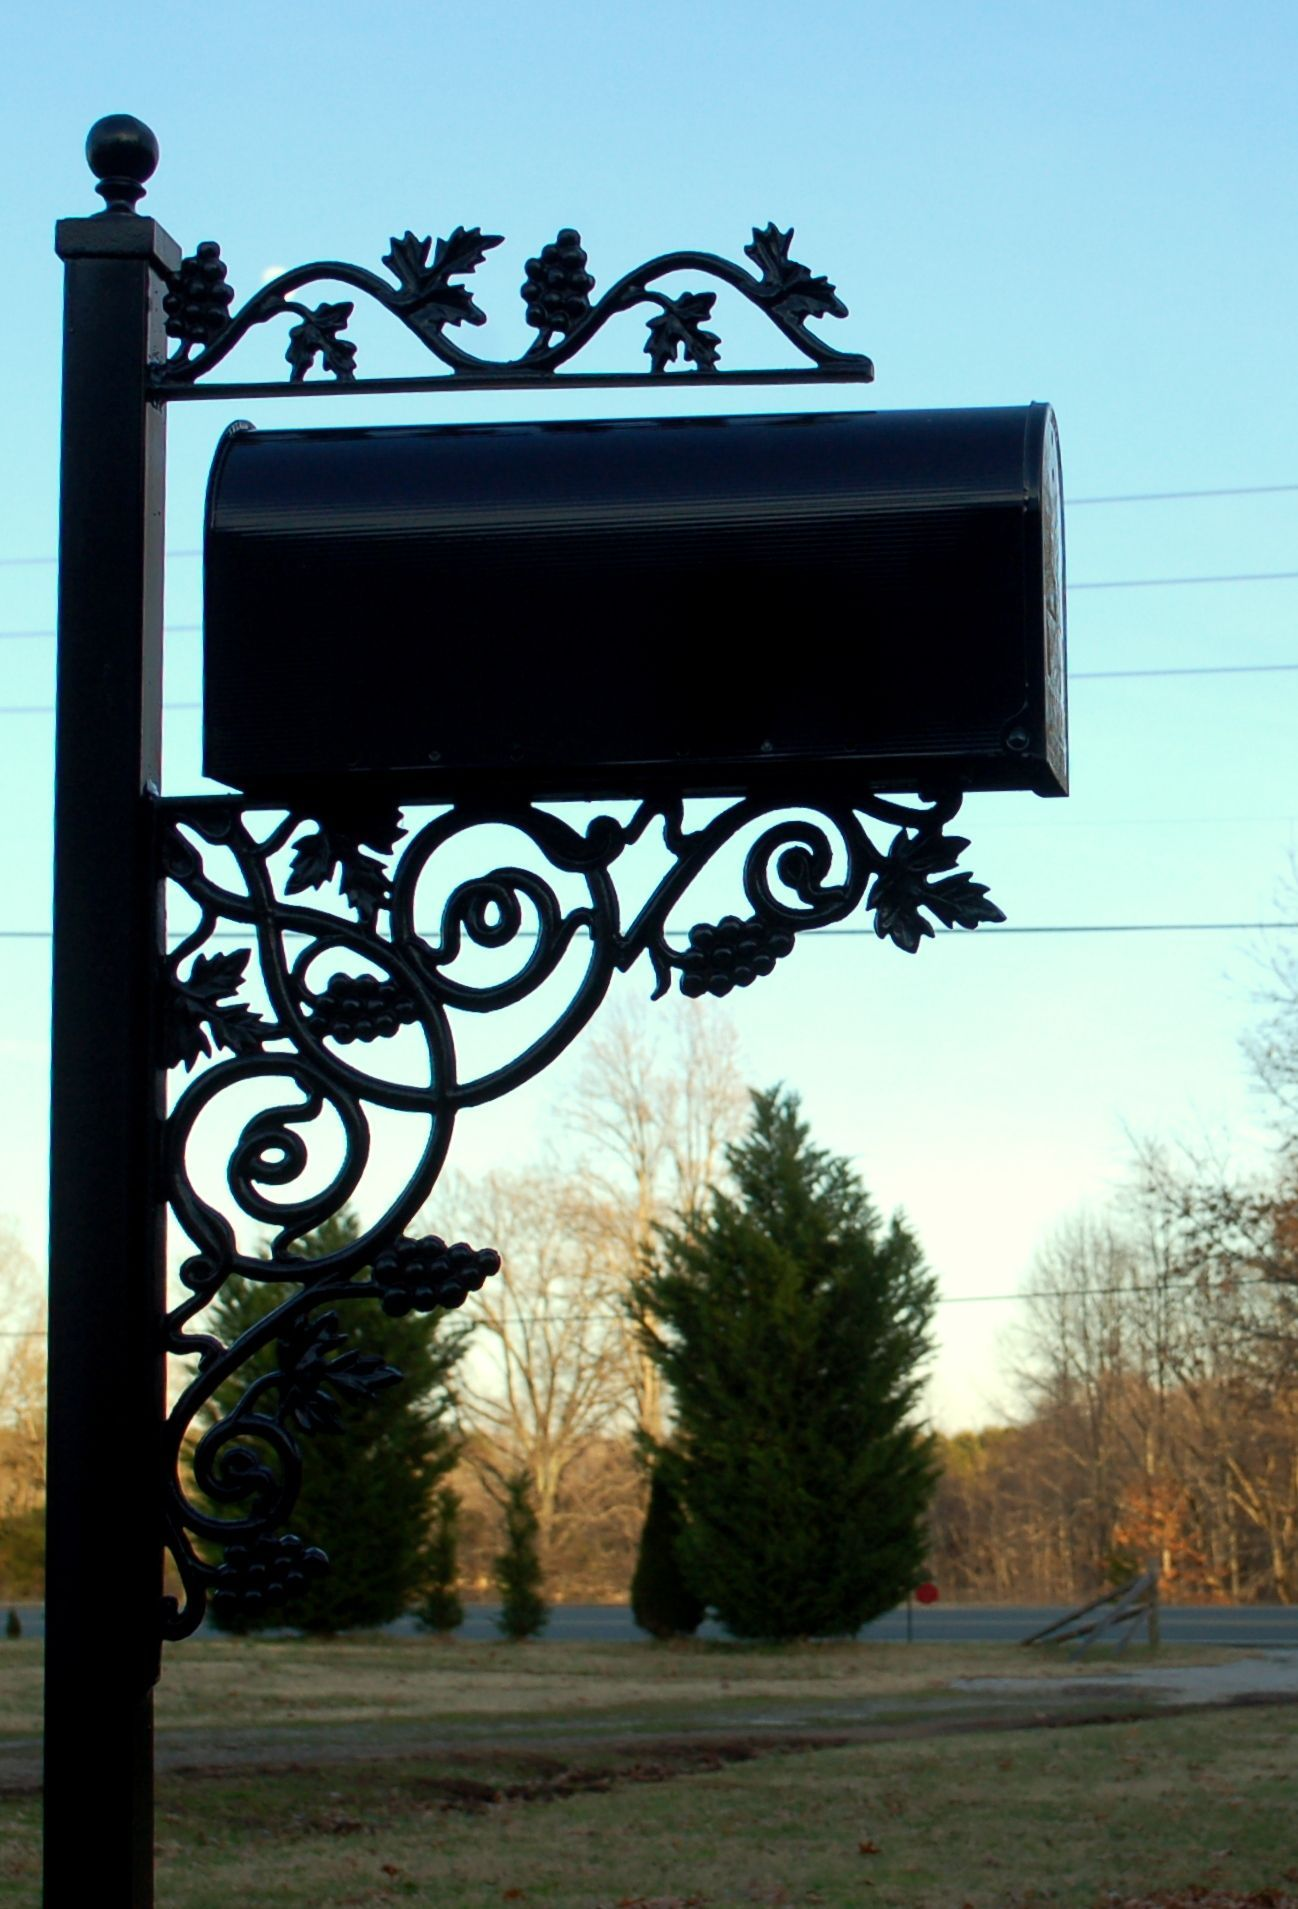 Custom Made Decorative Wrought Iron Mail Box Stands By Covington Iron Works Wrought Iron Decor Wrought Iron Mailbox Mailbox Design